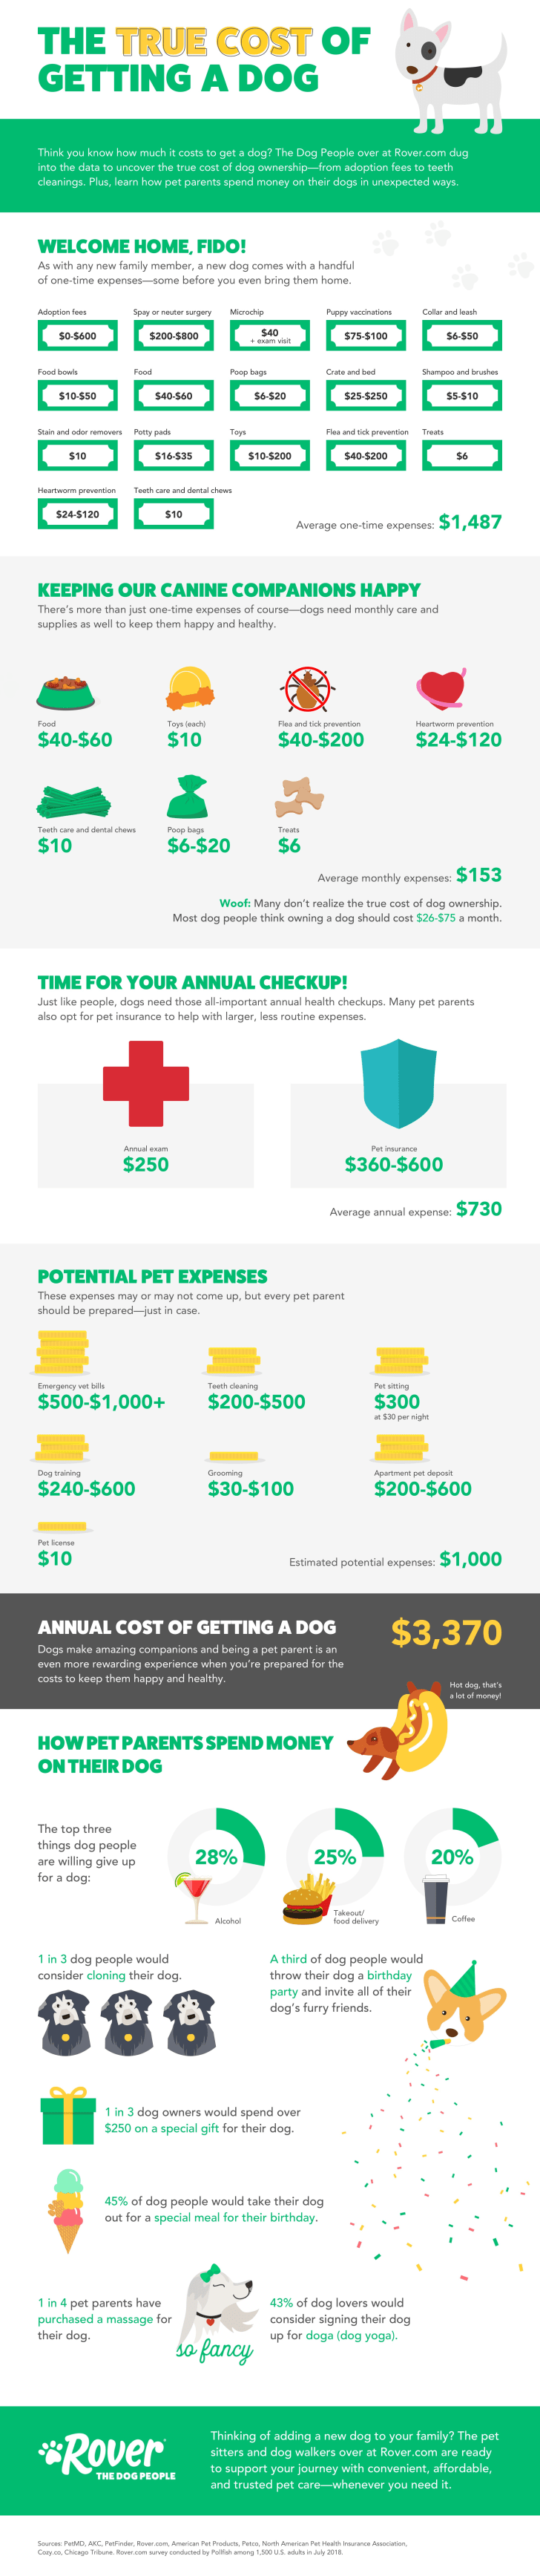 Infograhpic about dog care.